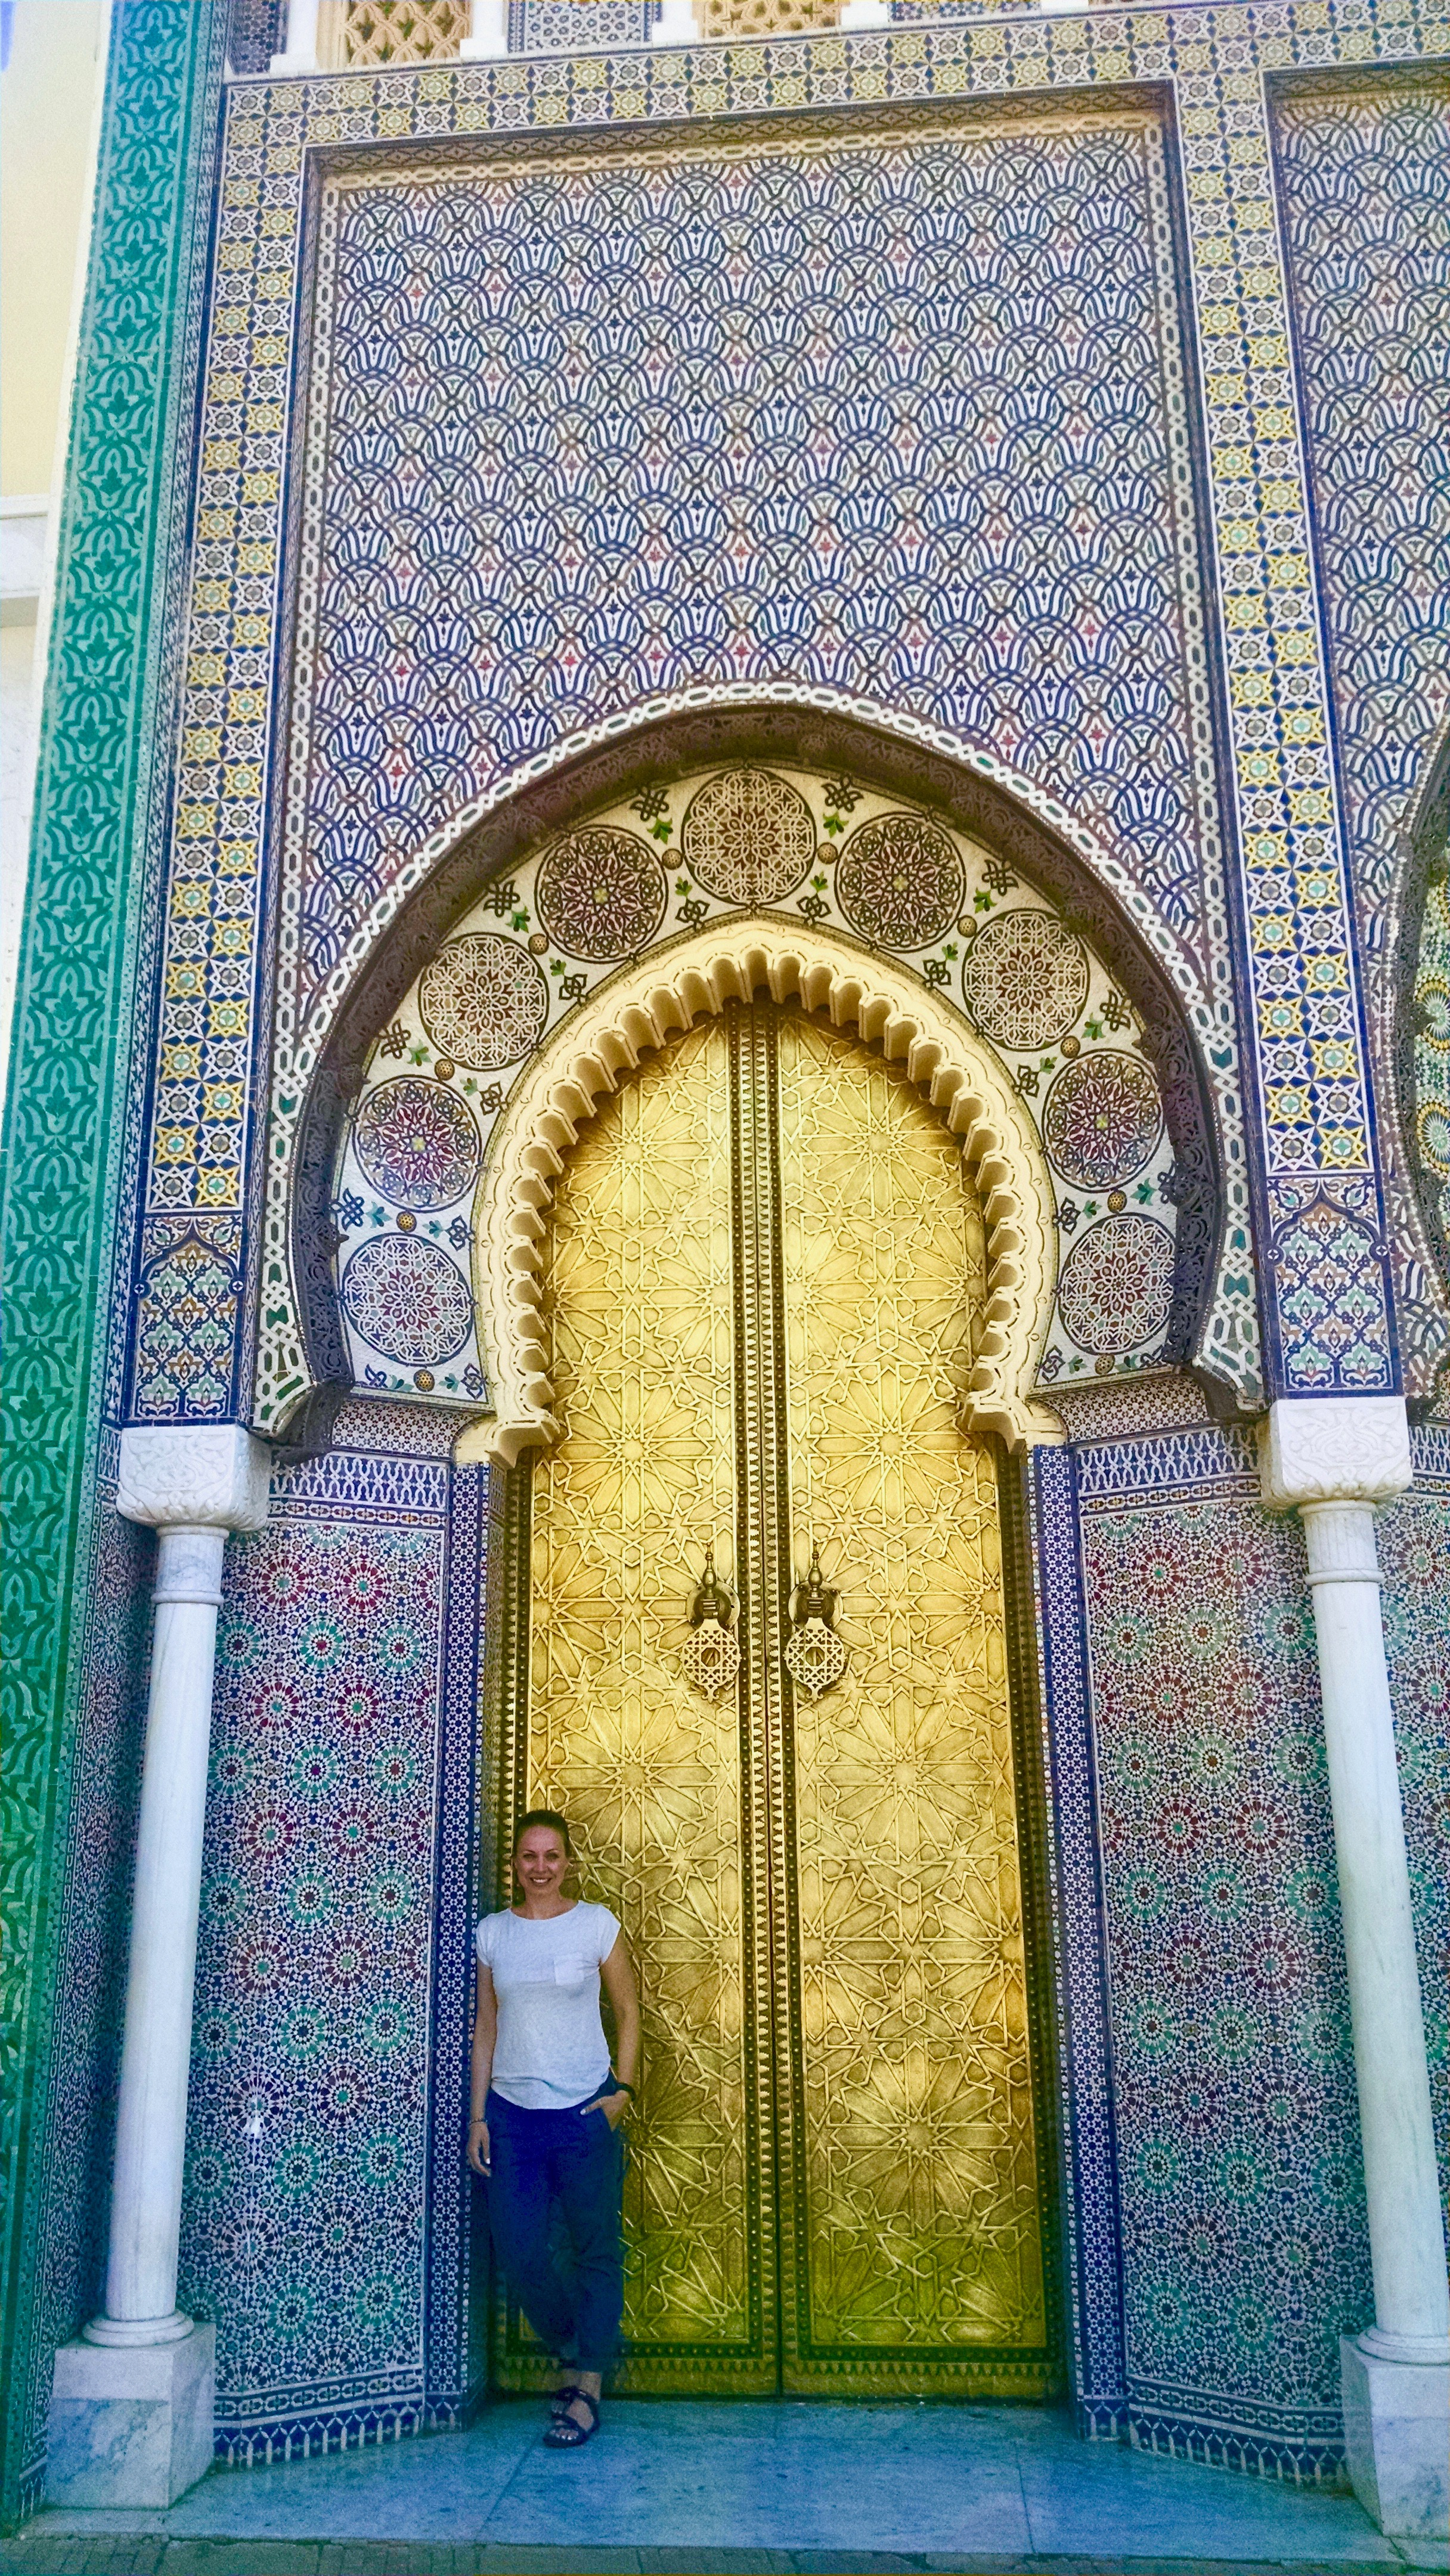 The famous gold doors of the royal palace in Fes, Morocco.